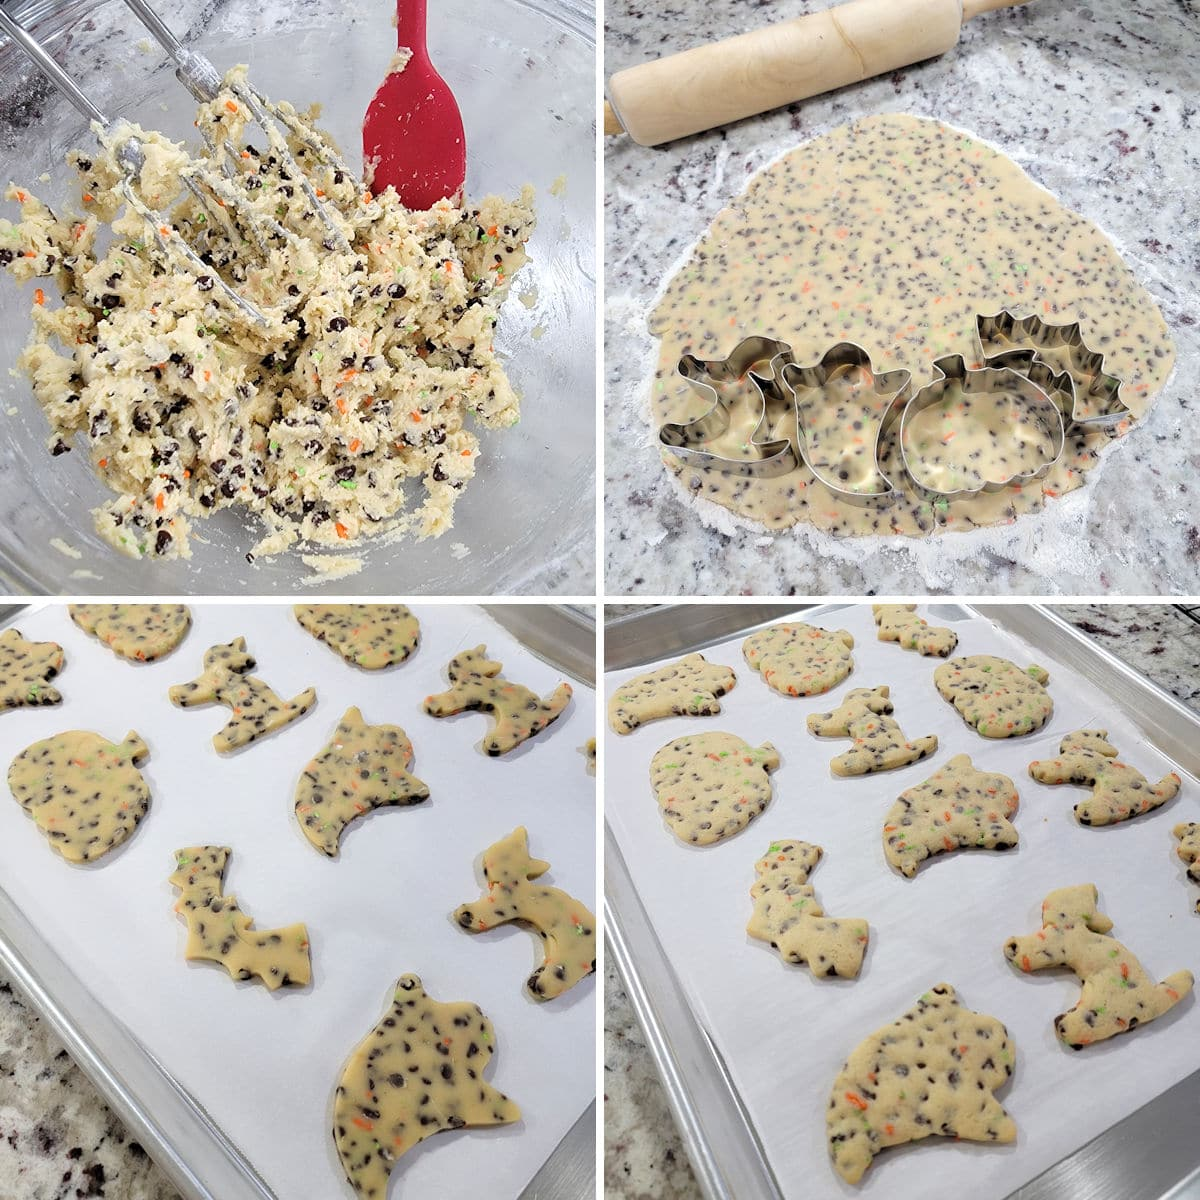 Rolling out cookie dough, cutting with cookie cutters, and baking on a baking sheet.